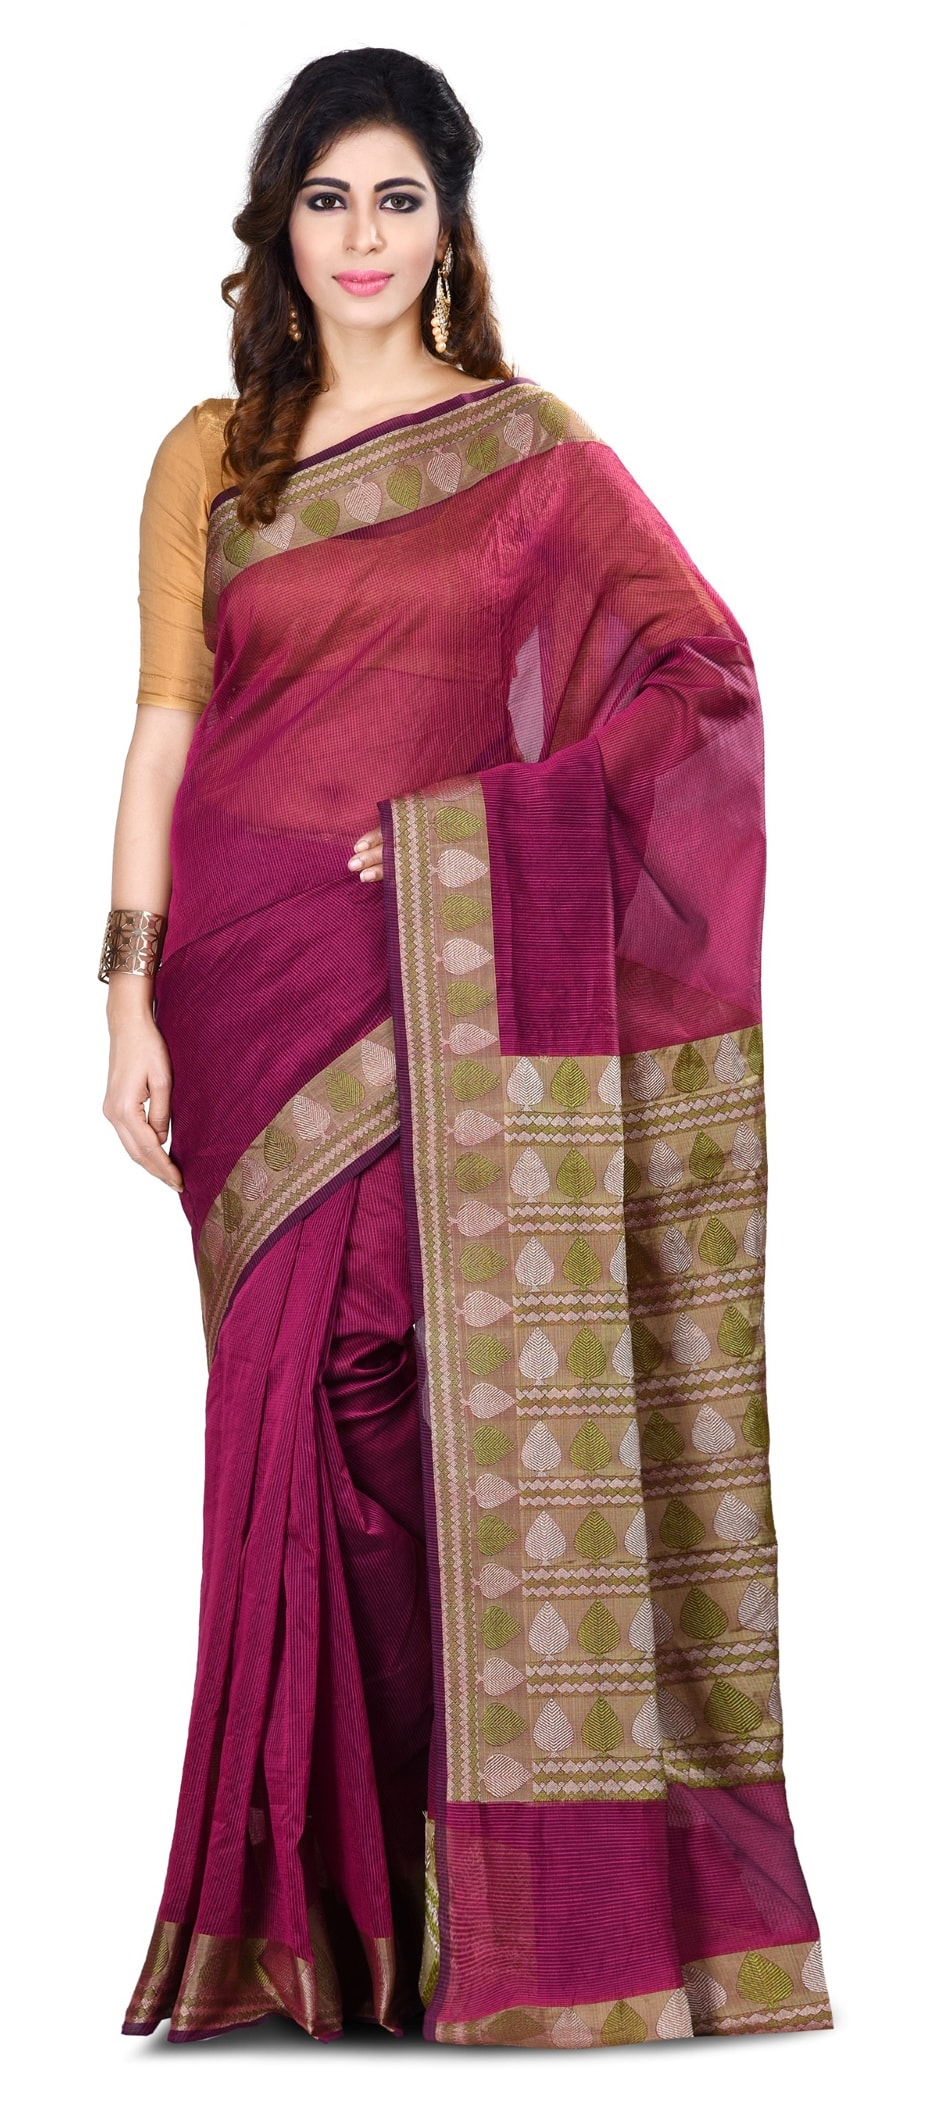 768756: Pink and Majenta color family Party Wear Sarees with ...